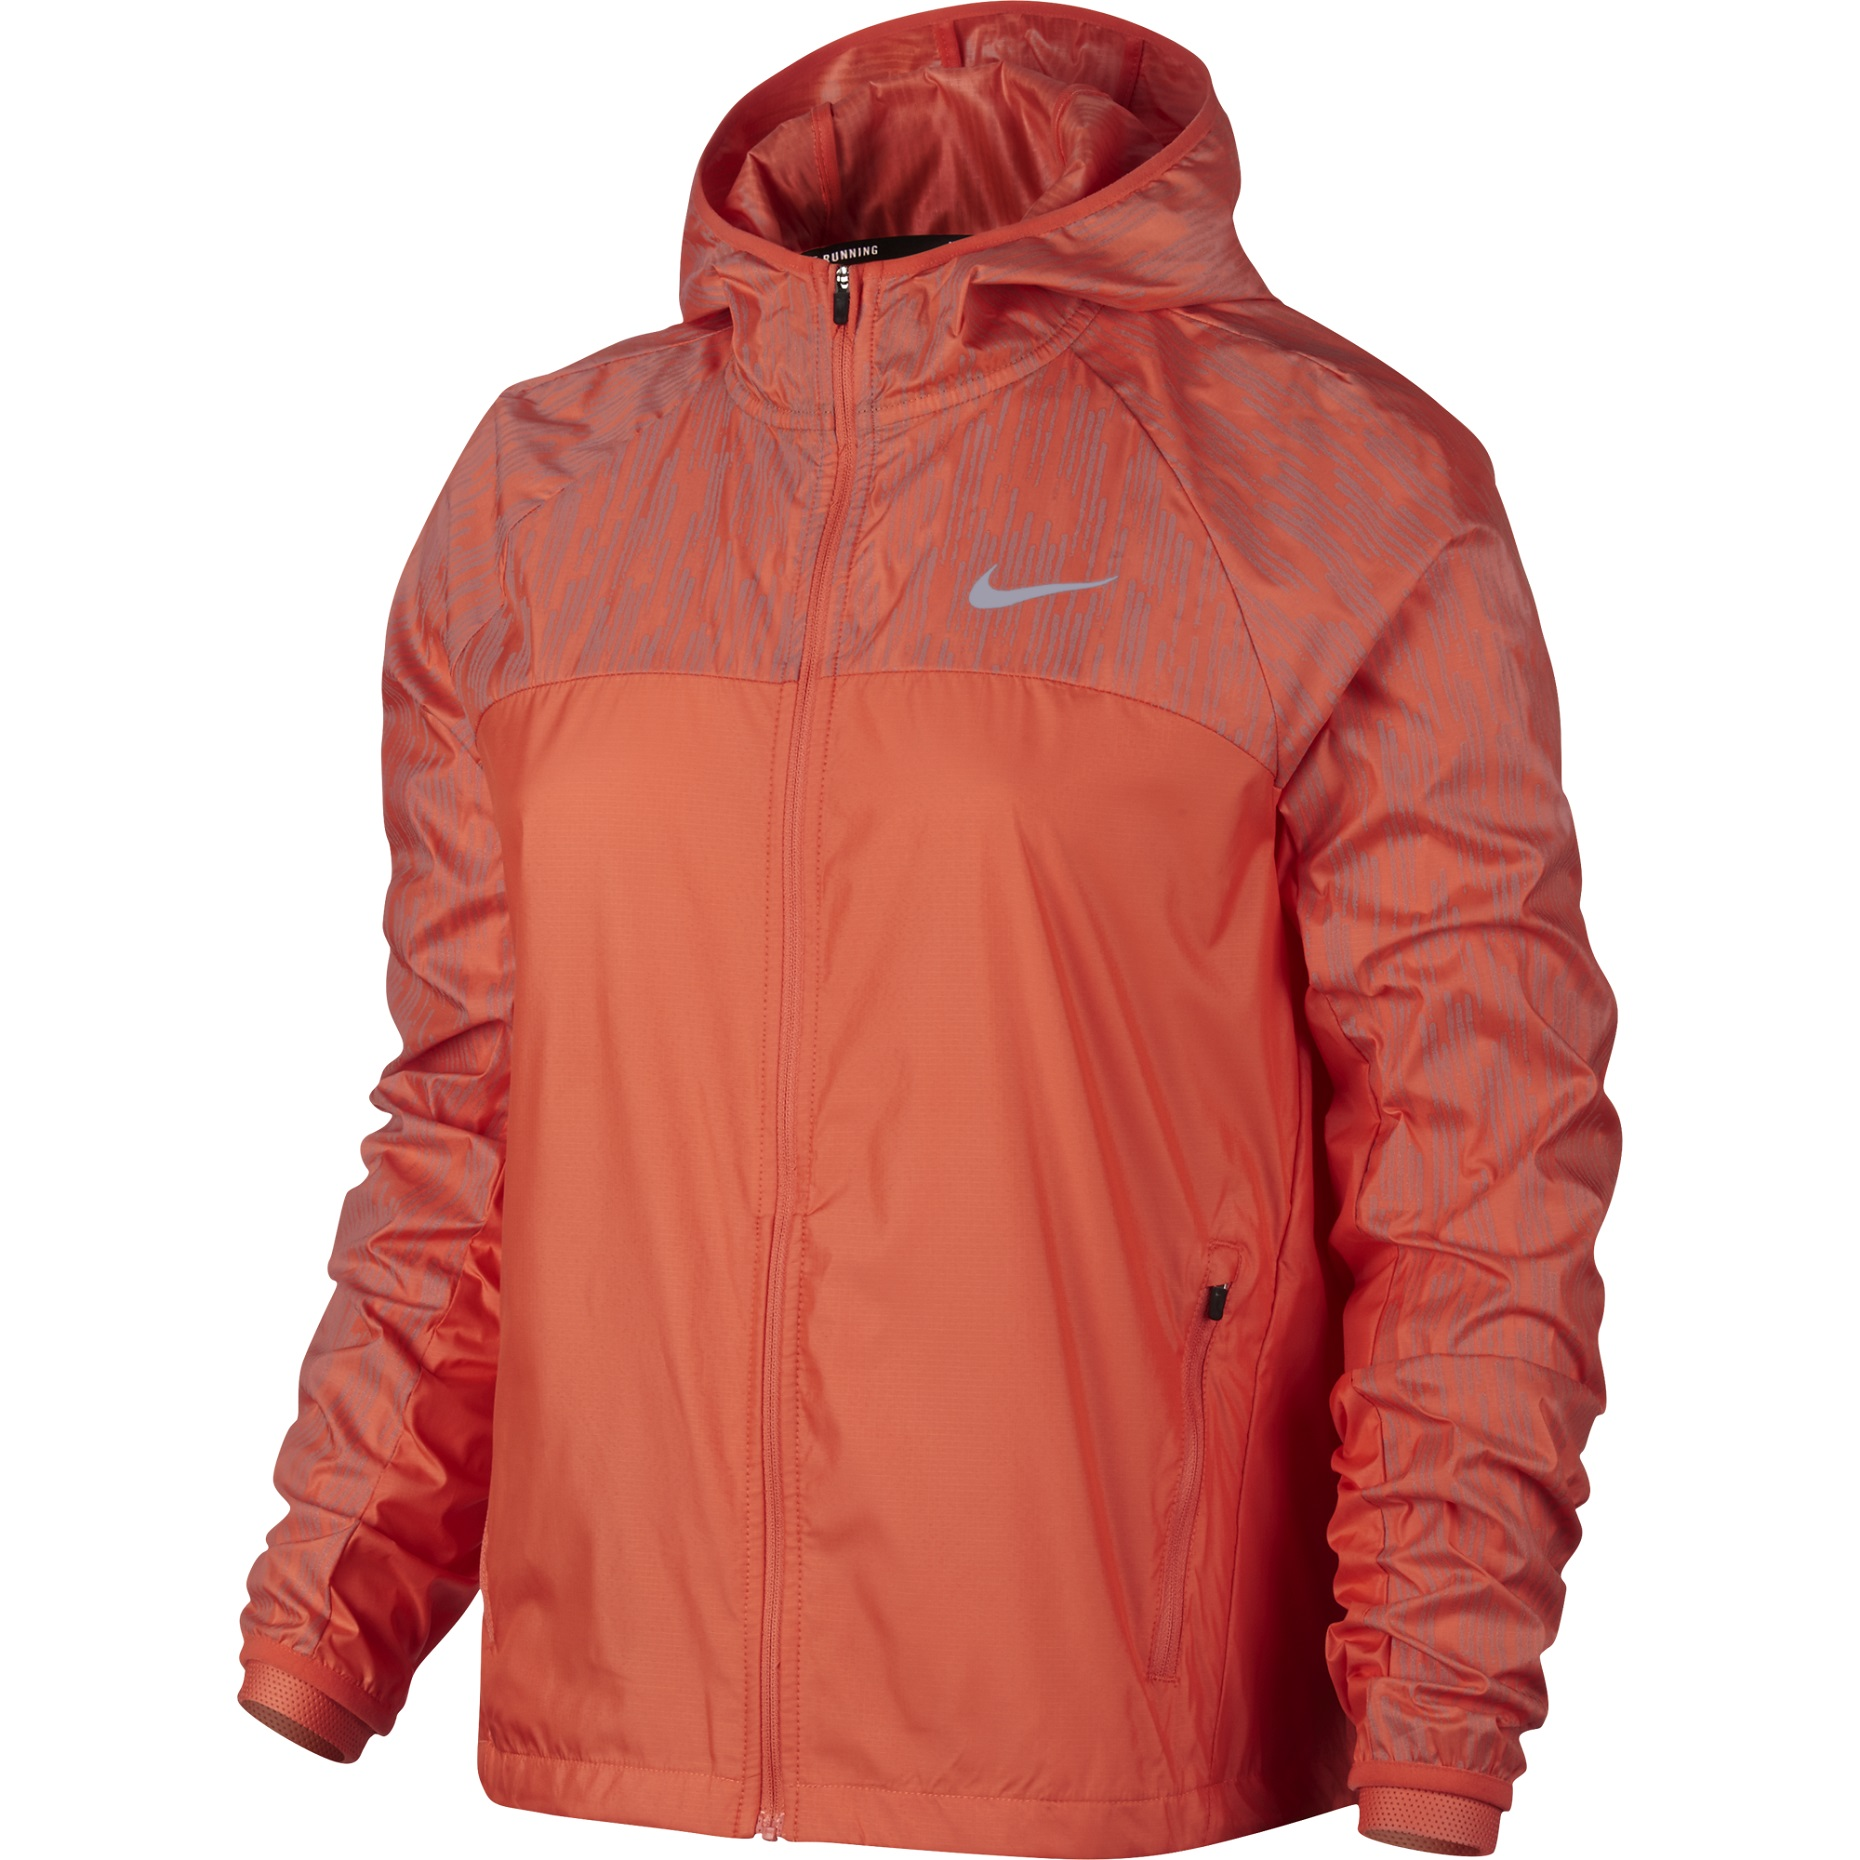 f854ac49b The Nike Shield Flash Women s Running Jacket